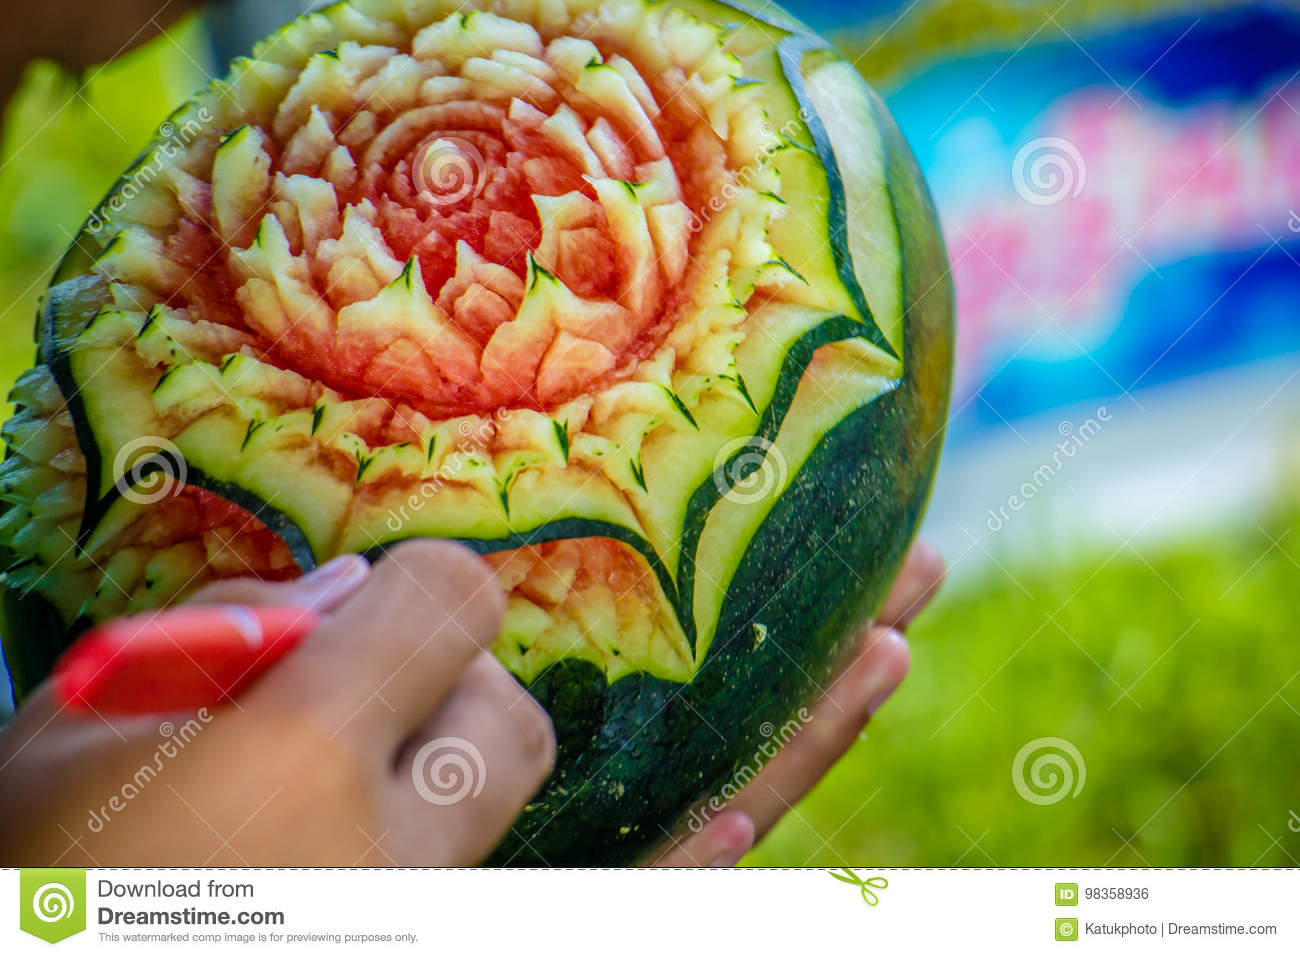 Watermelon carving with hand thailand stock photo image of food